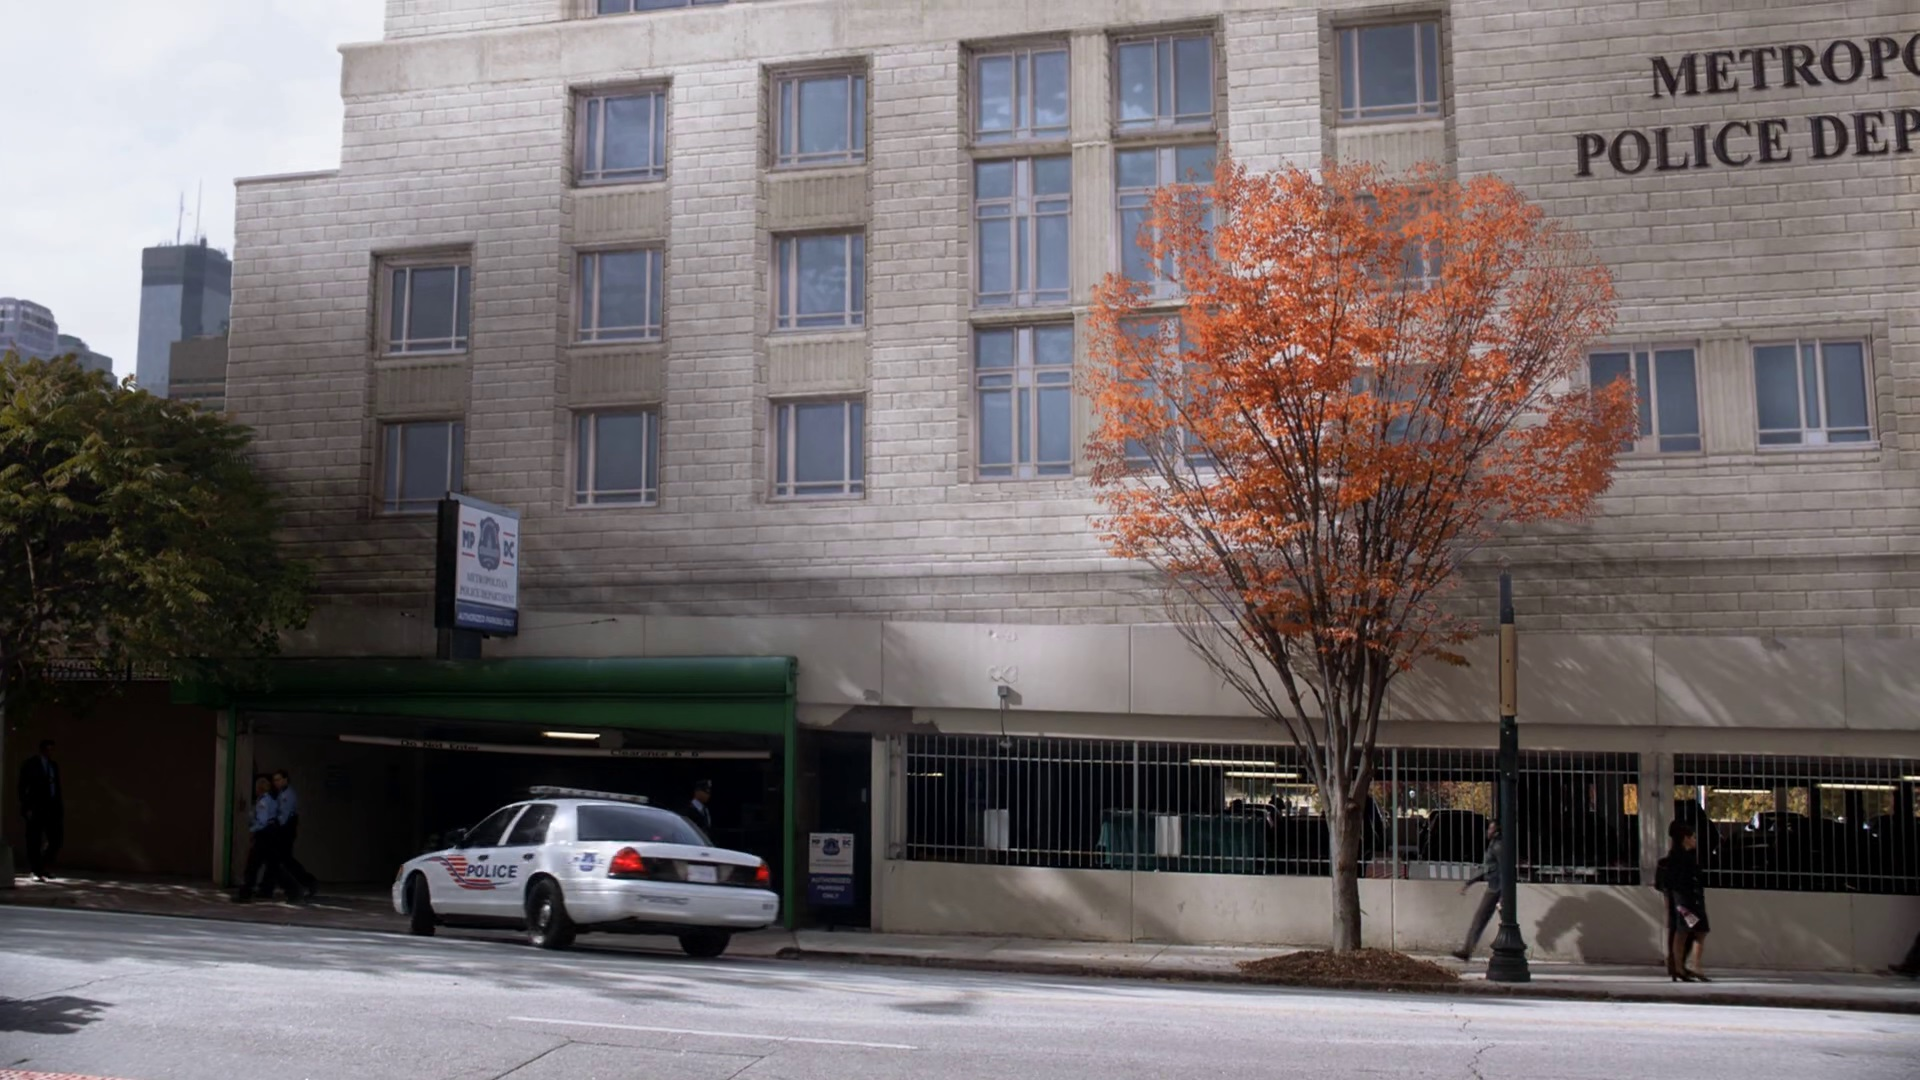 Metropolitan Police Department of the District of Columbia